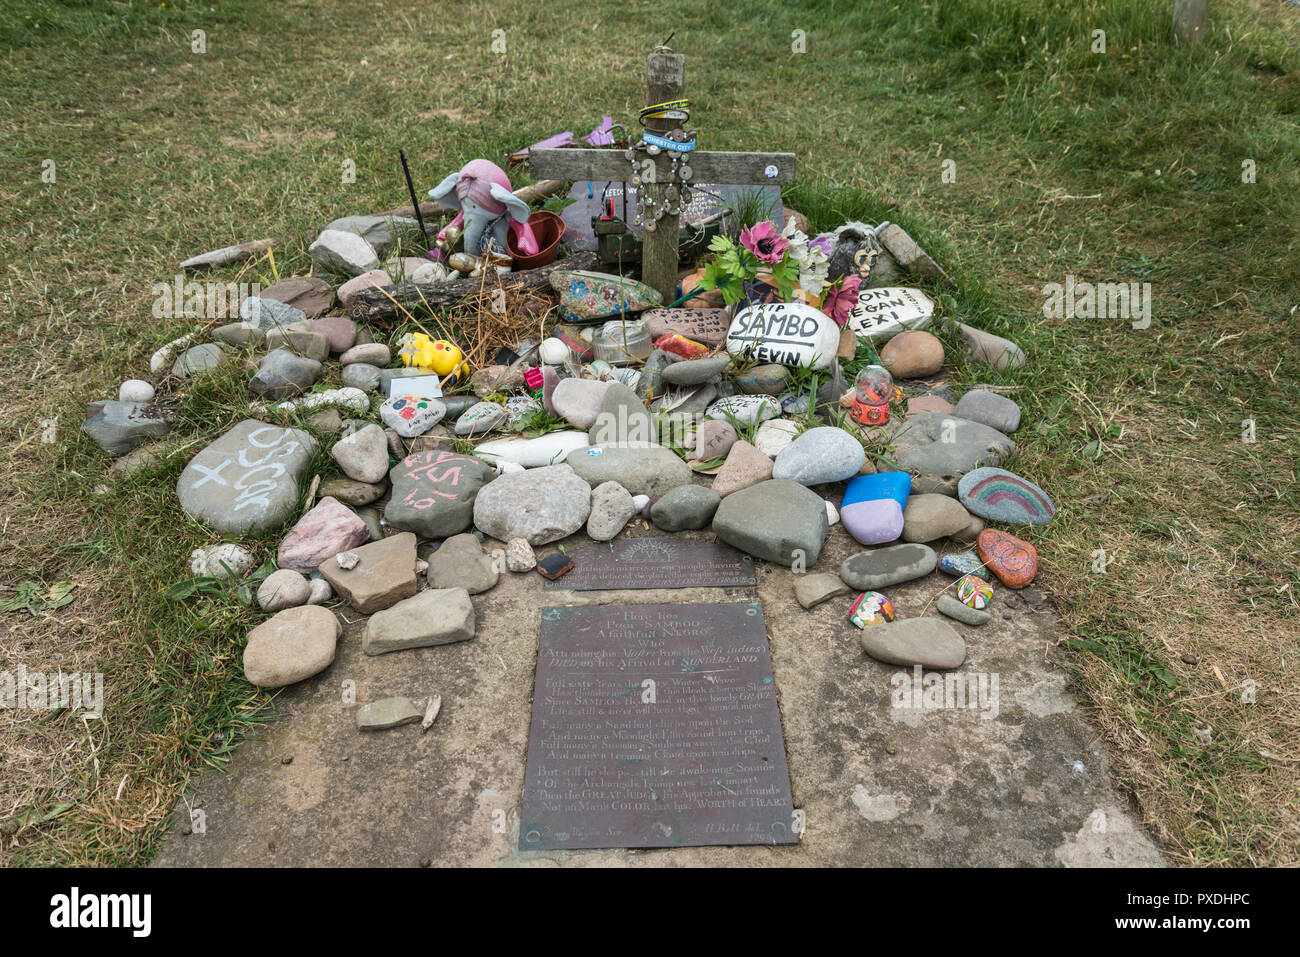 The grave of an 18th Century West Indian negro slave called Sambo at the remote Lancashire village of Sunderland Point, England, UK - Stock Image